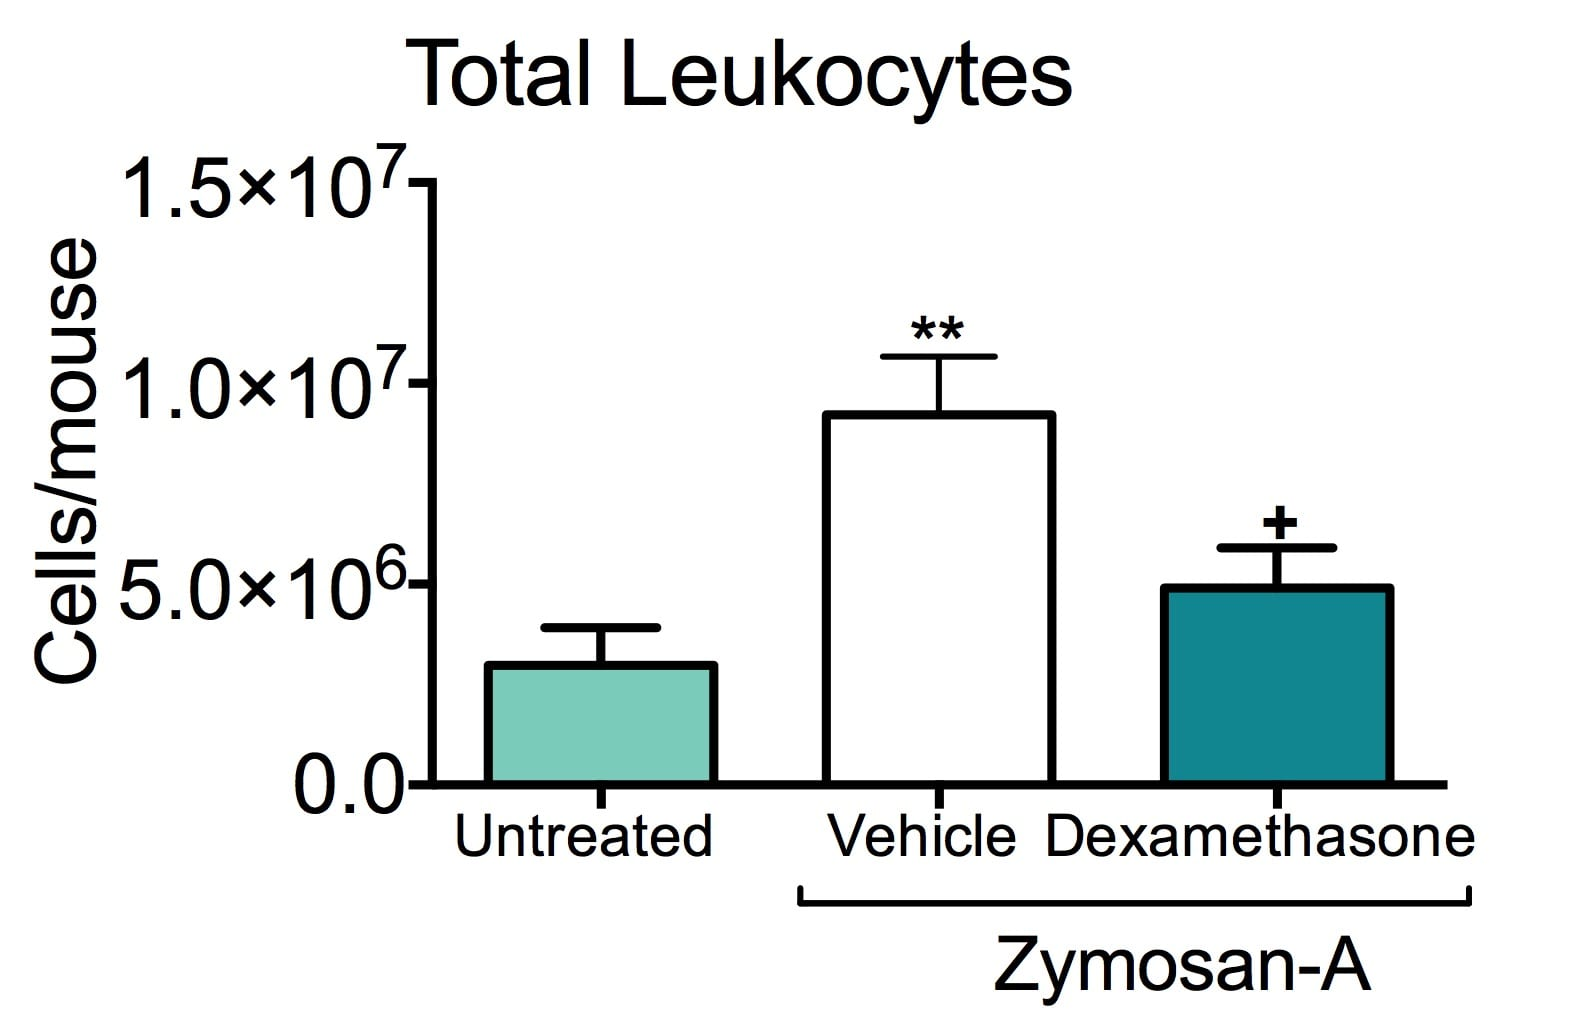 Total number of leukocytes in the peritoneum of untreated and zymosan-a treated mice with or without dexamethosone treatment.